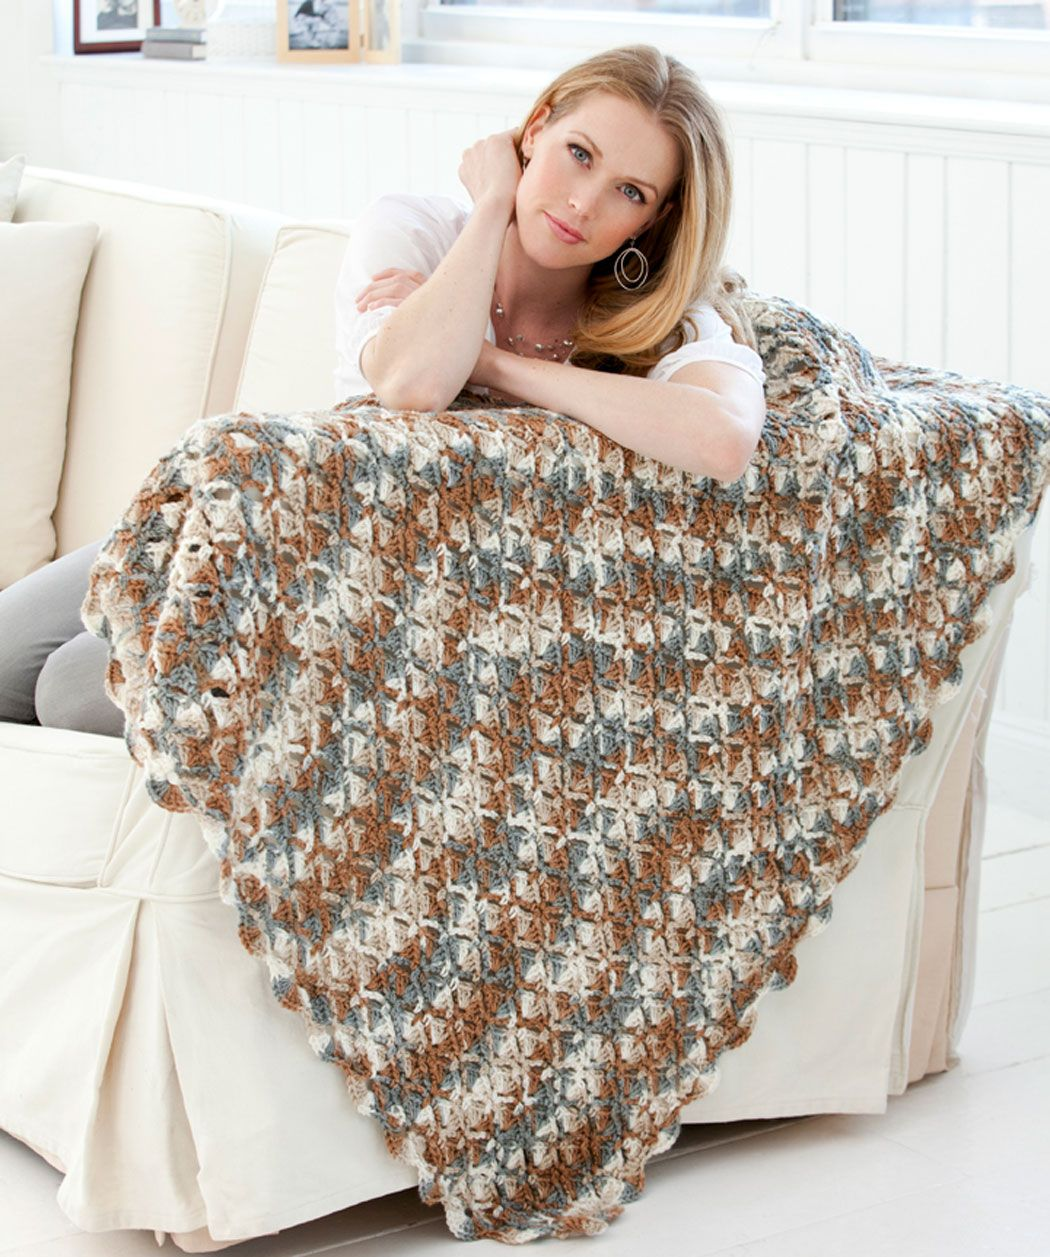 Stone Mountain Throw Crochet Pattern Crochet Afghan